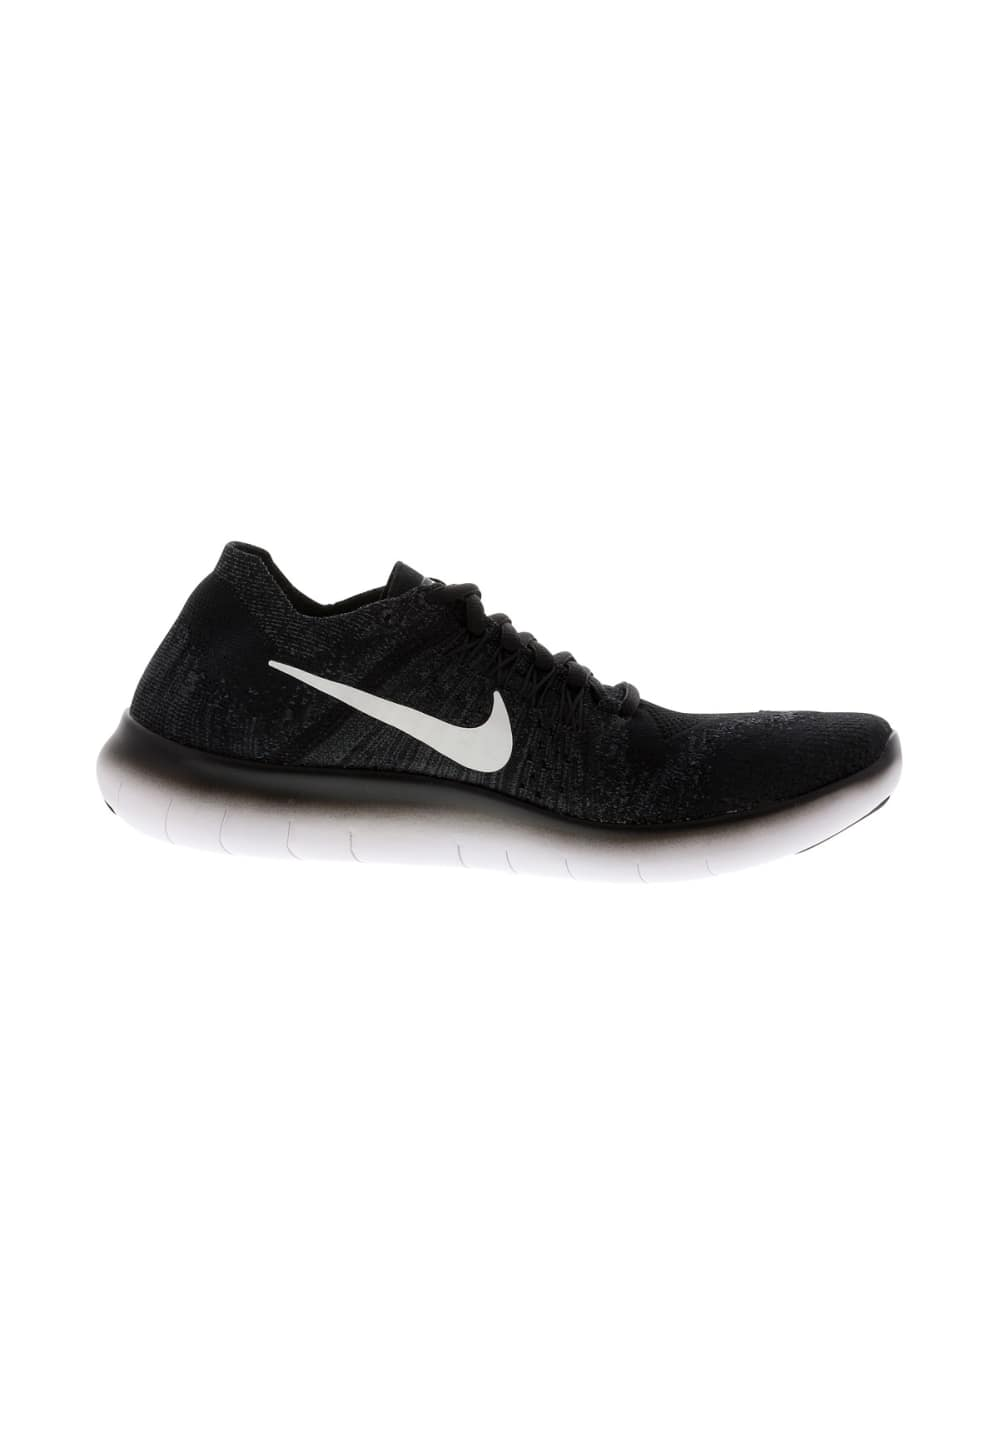 best authentic 19f8e 14144 Next. Nike. Free RN Flyknit - Running shoes for Women